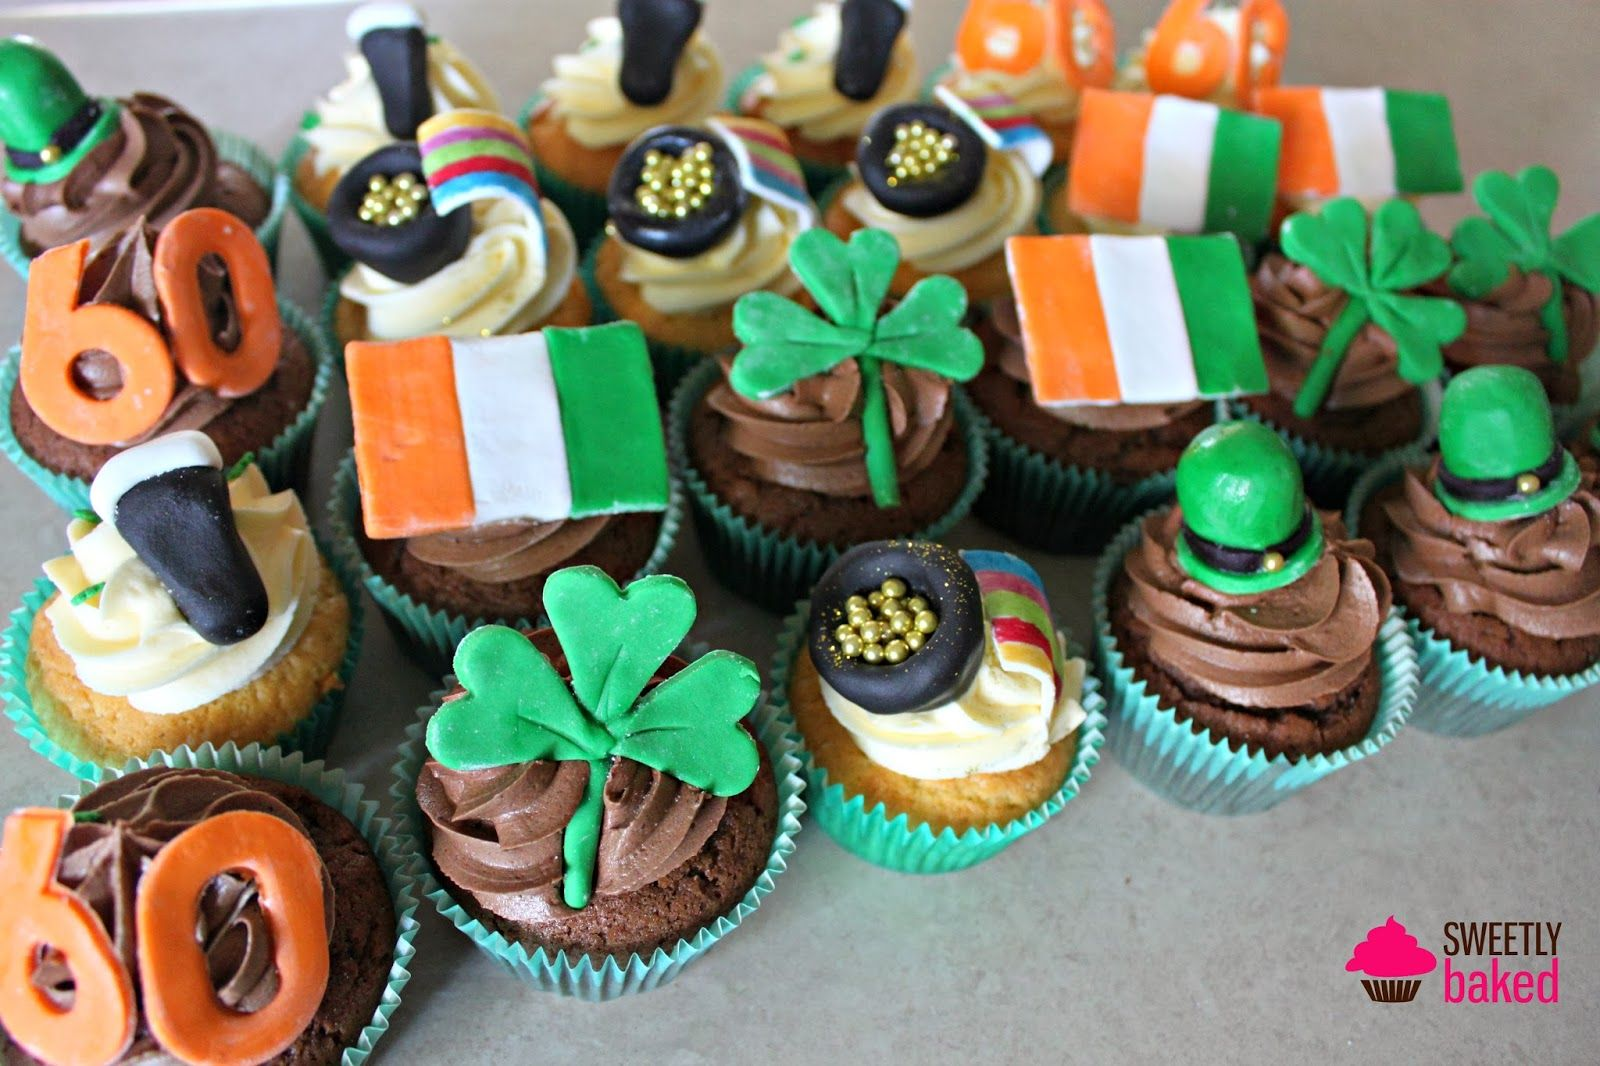 Sweetly Baked Perth St Patrick's Day Inspiration 60th